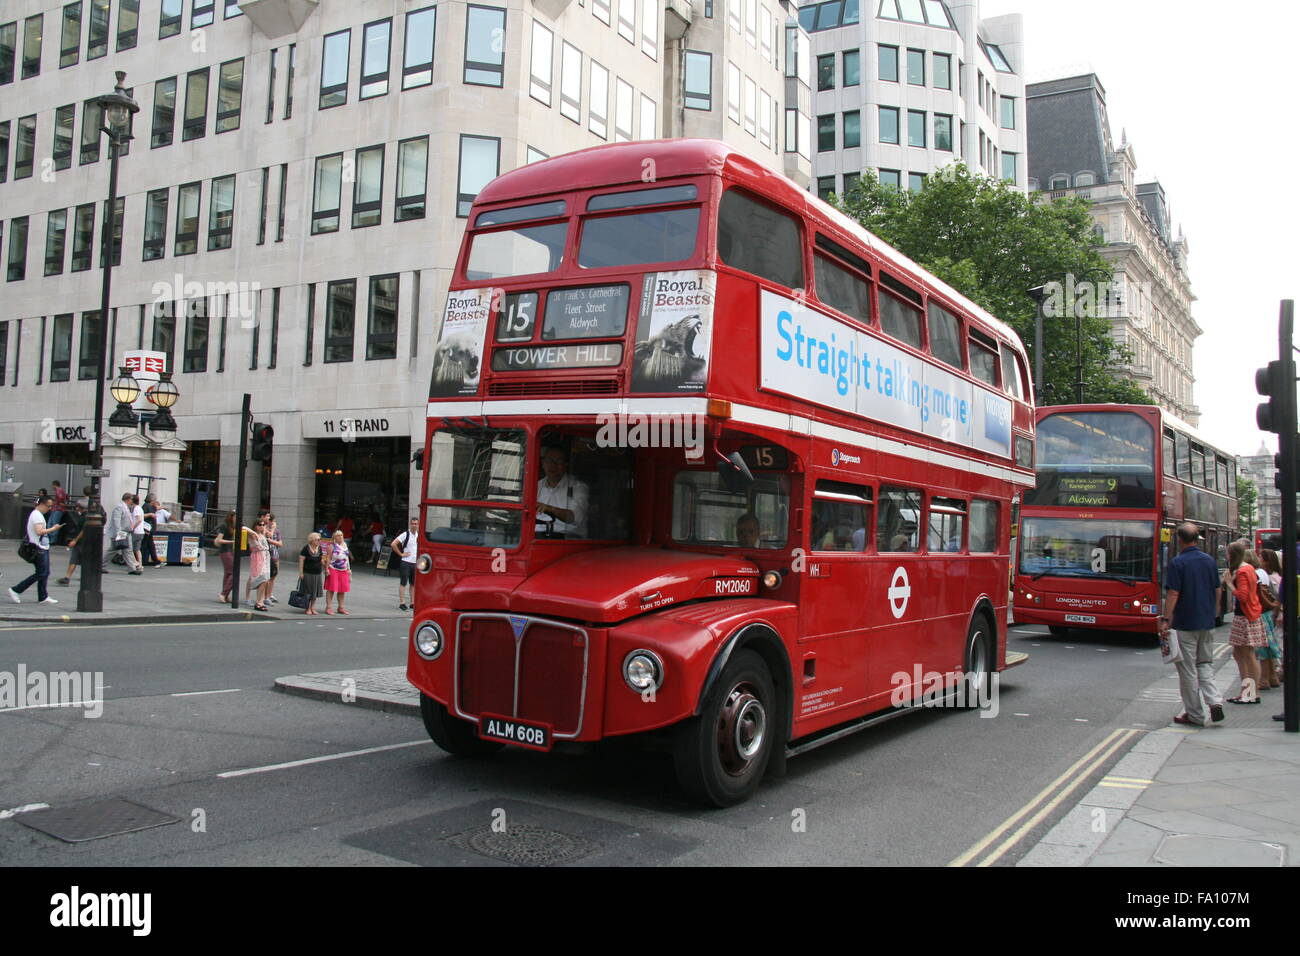 A FRONT NEARSIDE LANDSCAPE VIEW OF A RED TRADITIONAL LONDON ROUTEMASTER BUS OPERATED BY STAGECOACH ON ROUTE 15 - Stock Image